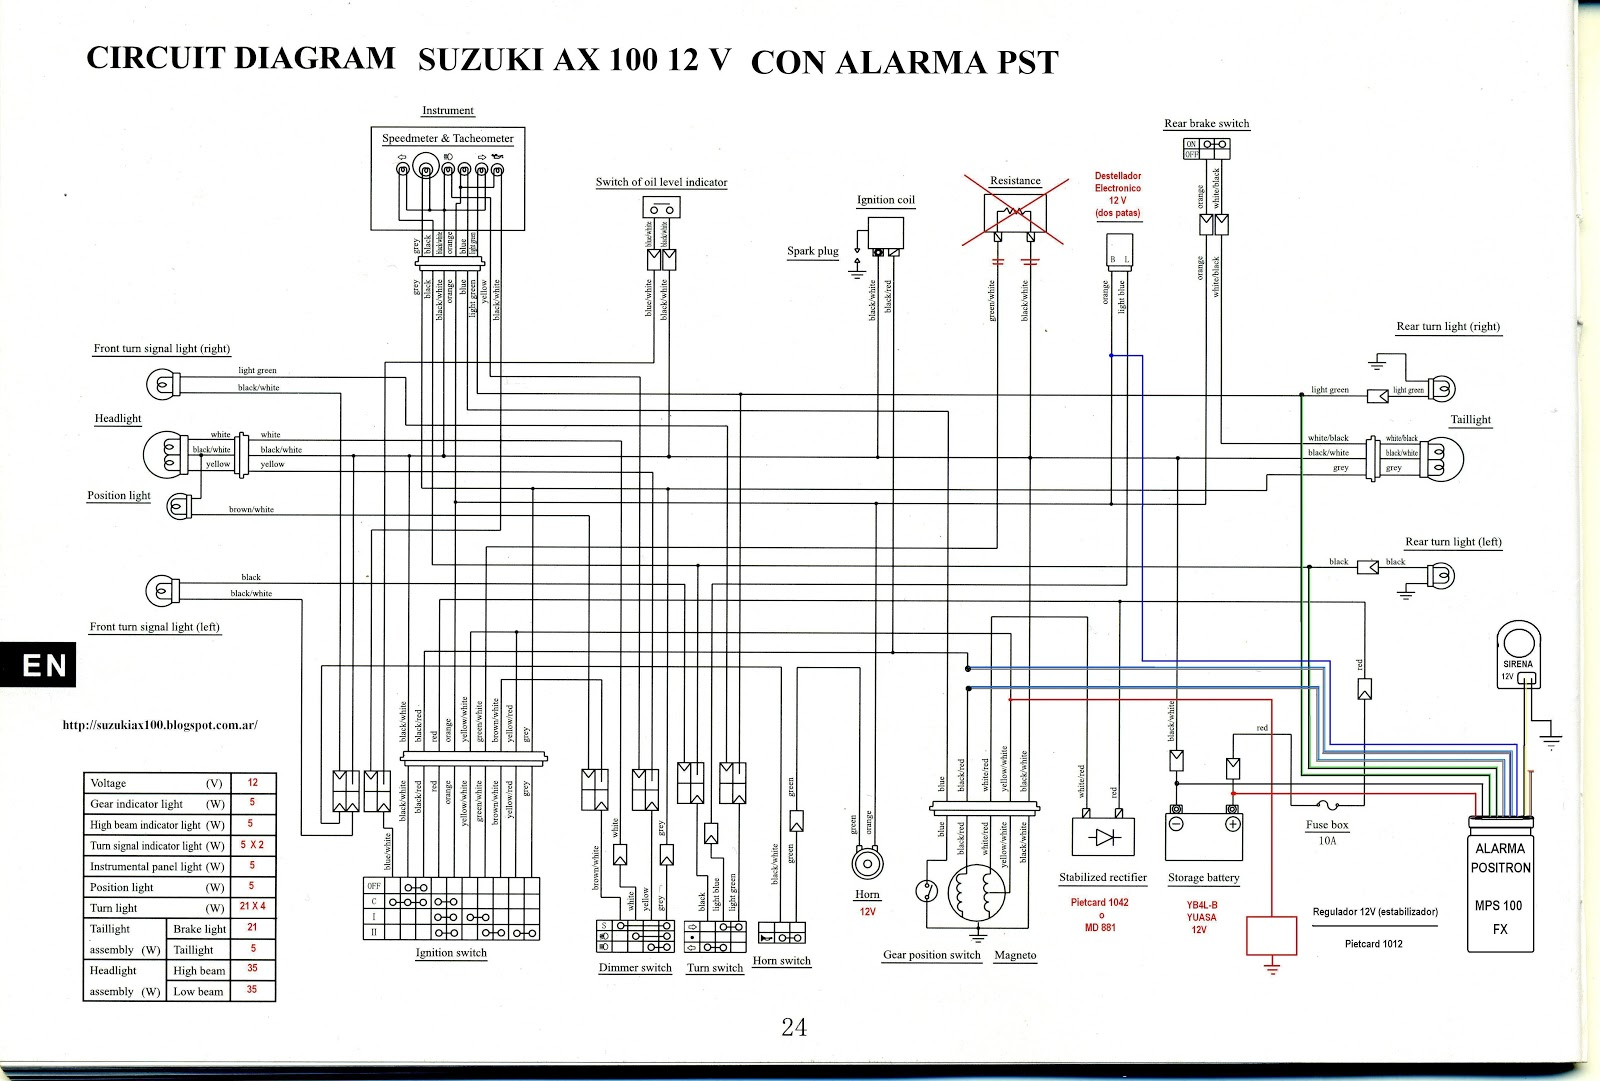 wiring diagram suzuki ax100 suzuki xl7 electrical diagram